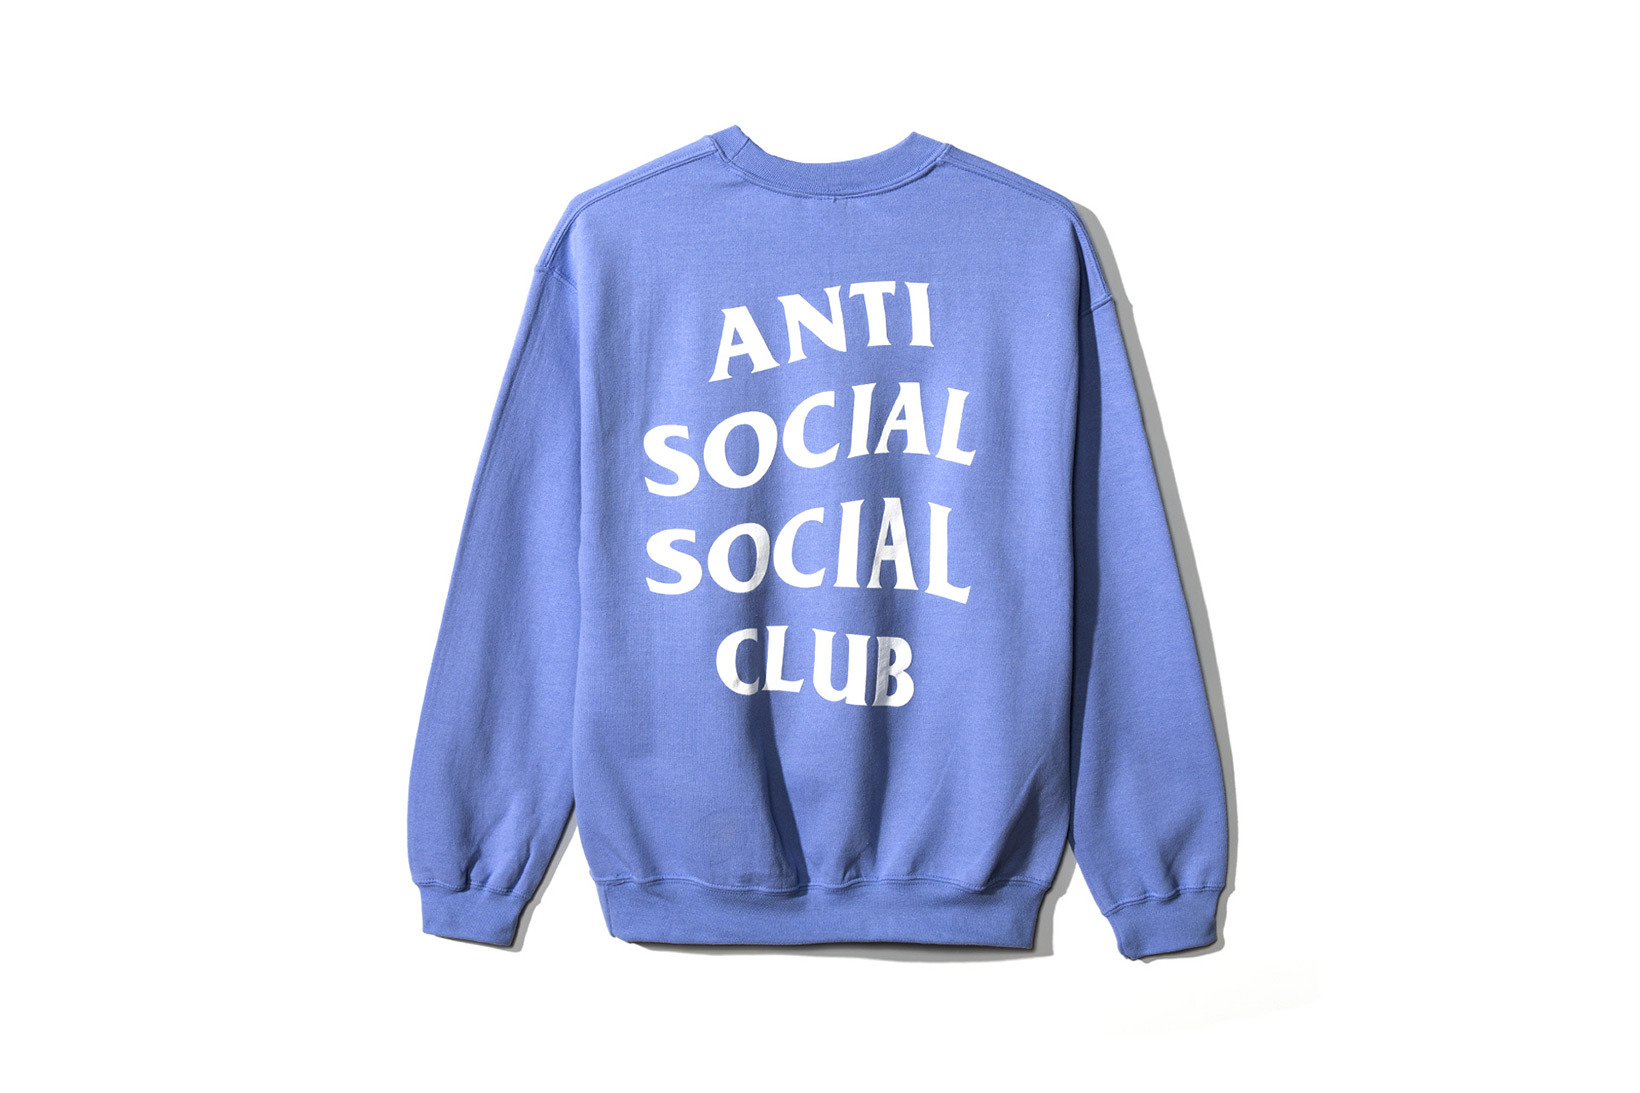 da61307e5680 Anti Social Social Club SS17 Collection - Trapped Magazine